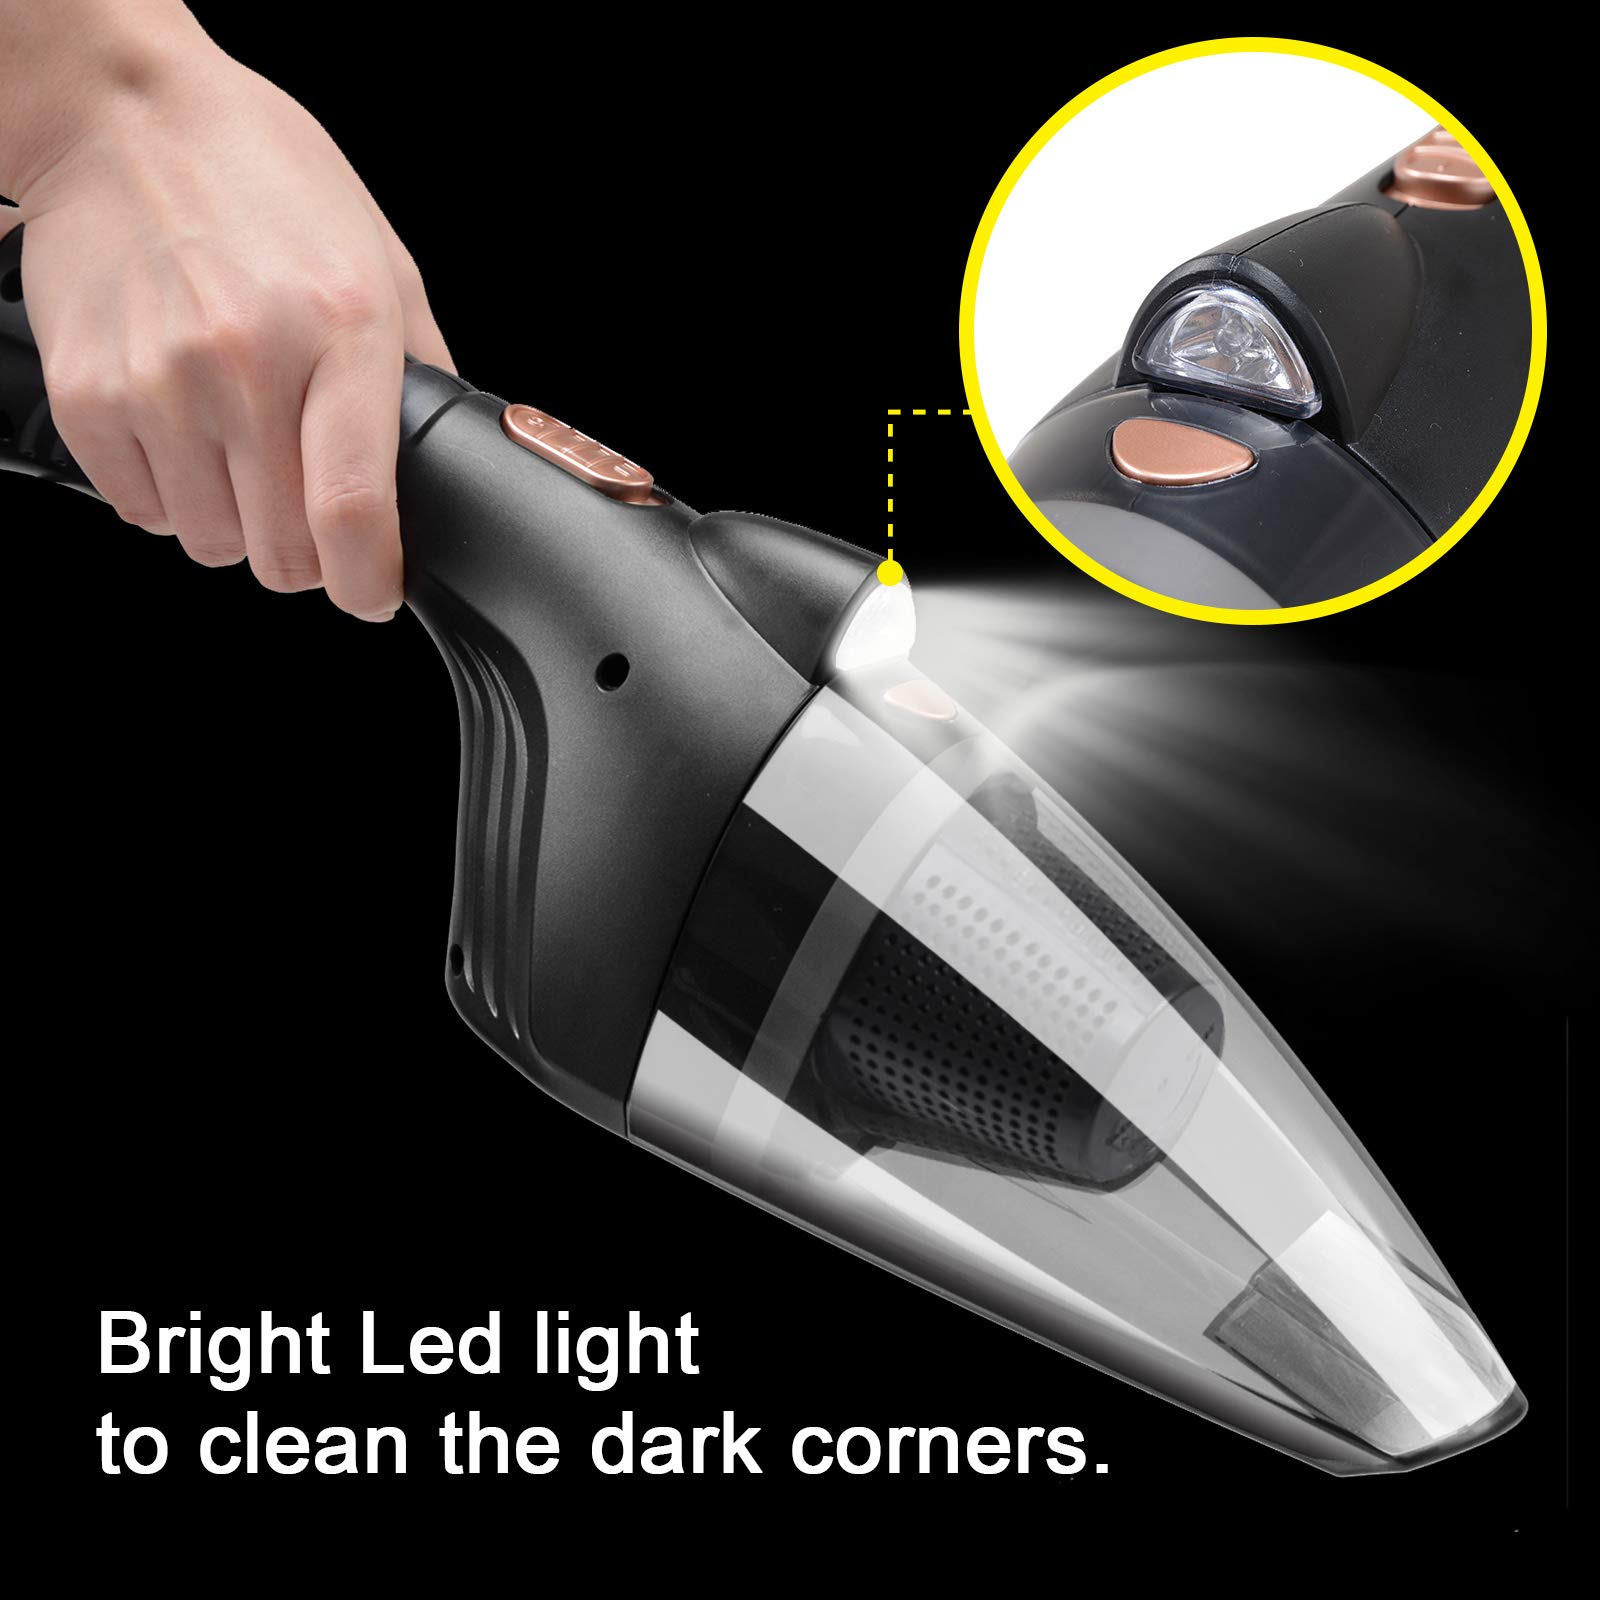 Voilamart Car Vacuum Cleaner, DC 12V w/LED Light 16.4FT Power Corded Portable Handheld Vacuum Cleaner for Car Interior Cleaning, Wet/Dry Mini Lightweight 3 Nozzles